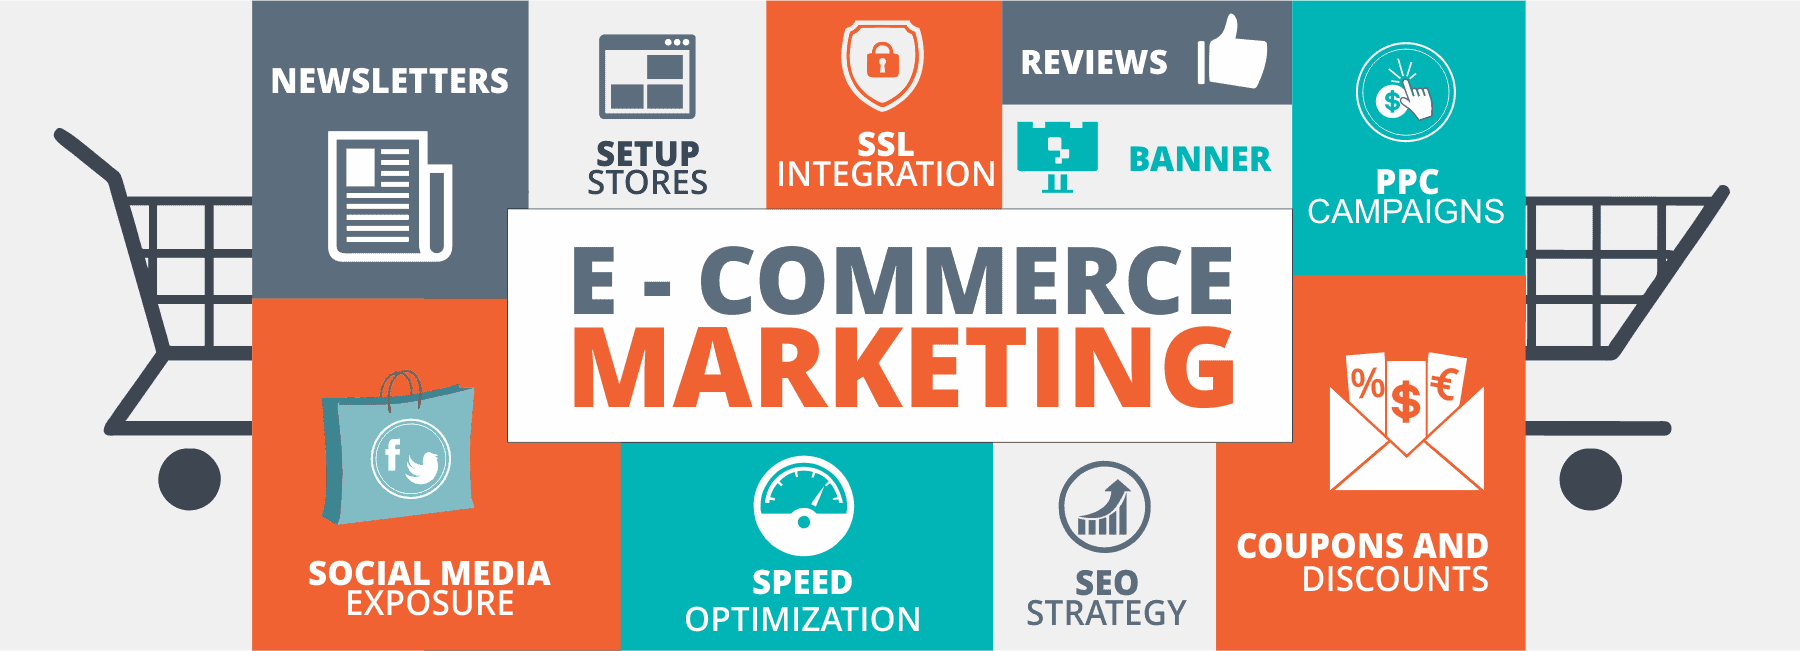 eCommerce Video Marketing Strategy